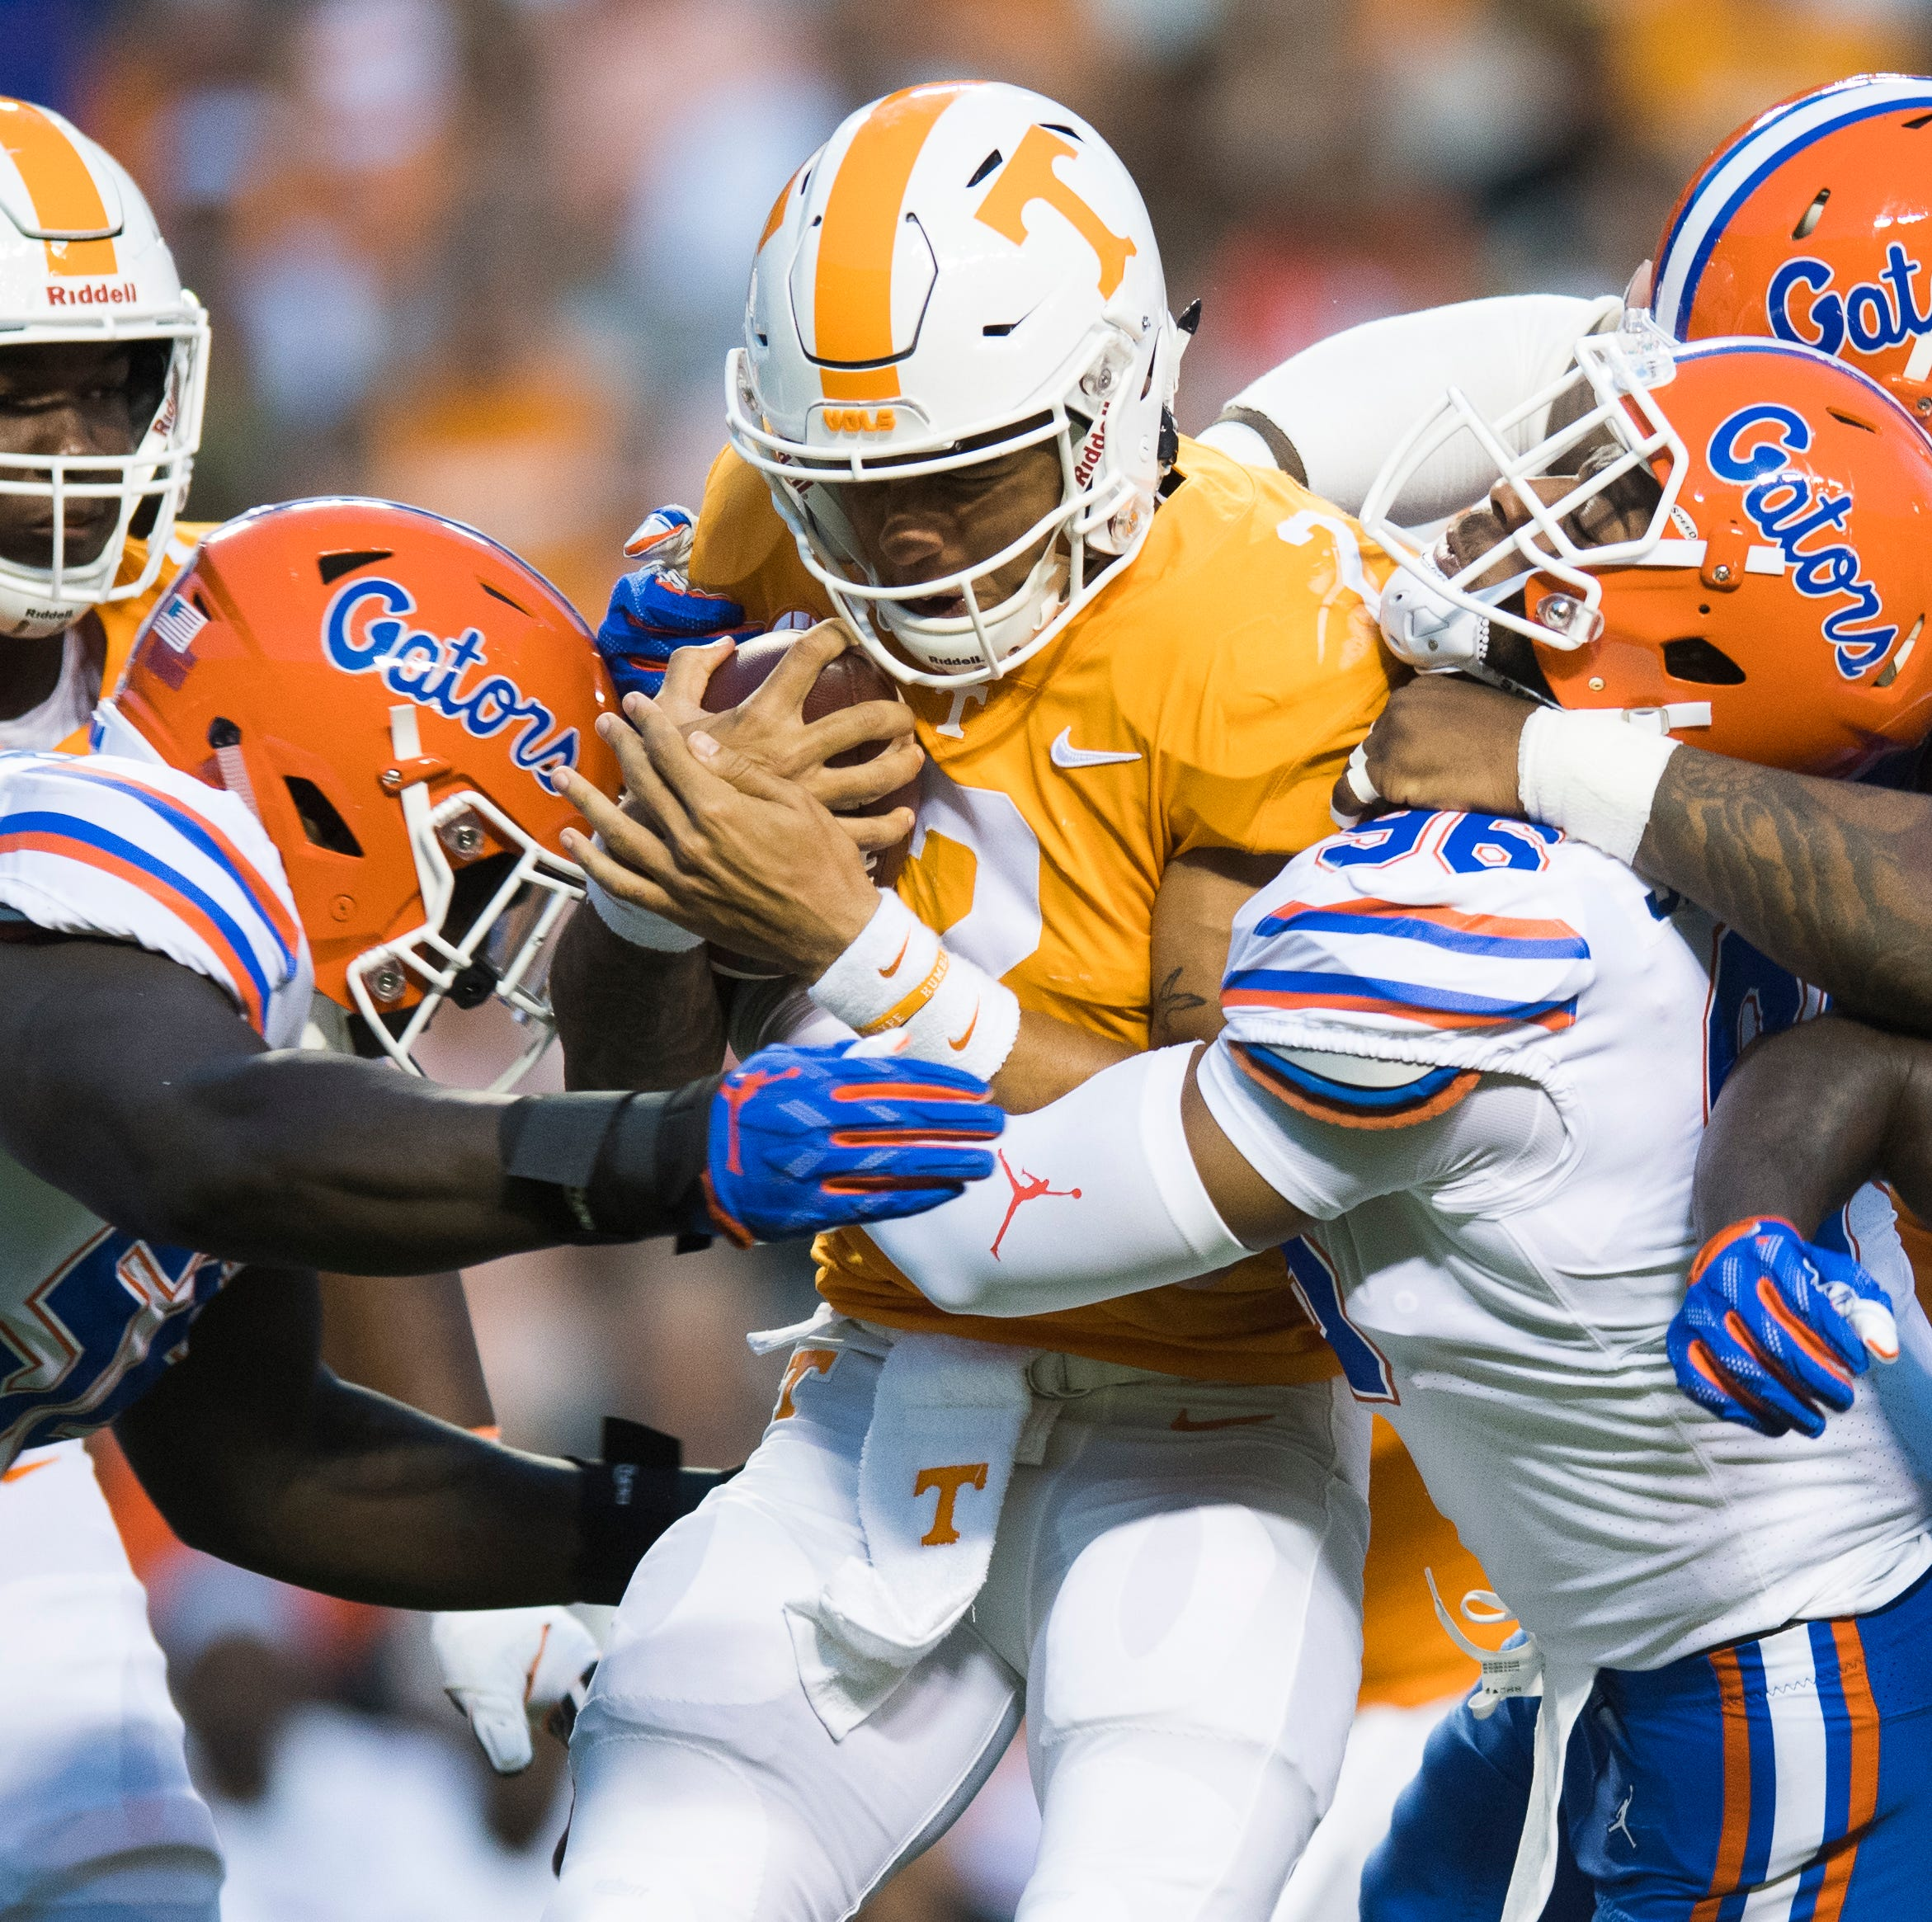 Tennessee quarterback Jarrett Guarantano (2) is tackled by a host of Florida players during a game between Tennessee and Florida at Neyland Stadium in Knoxville, Tennessee on Saturday, September 22, 2018.